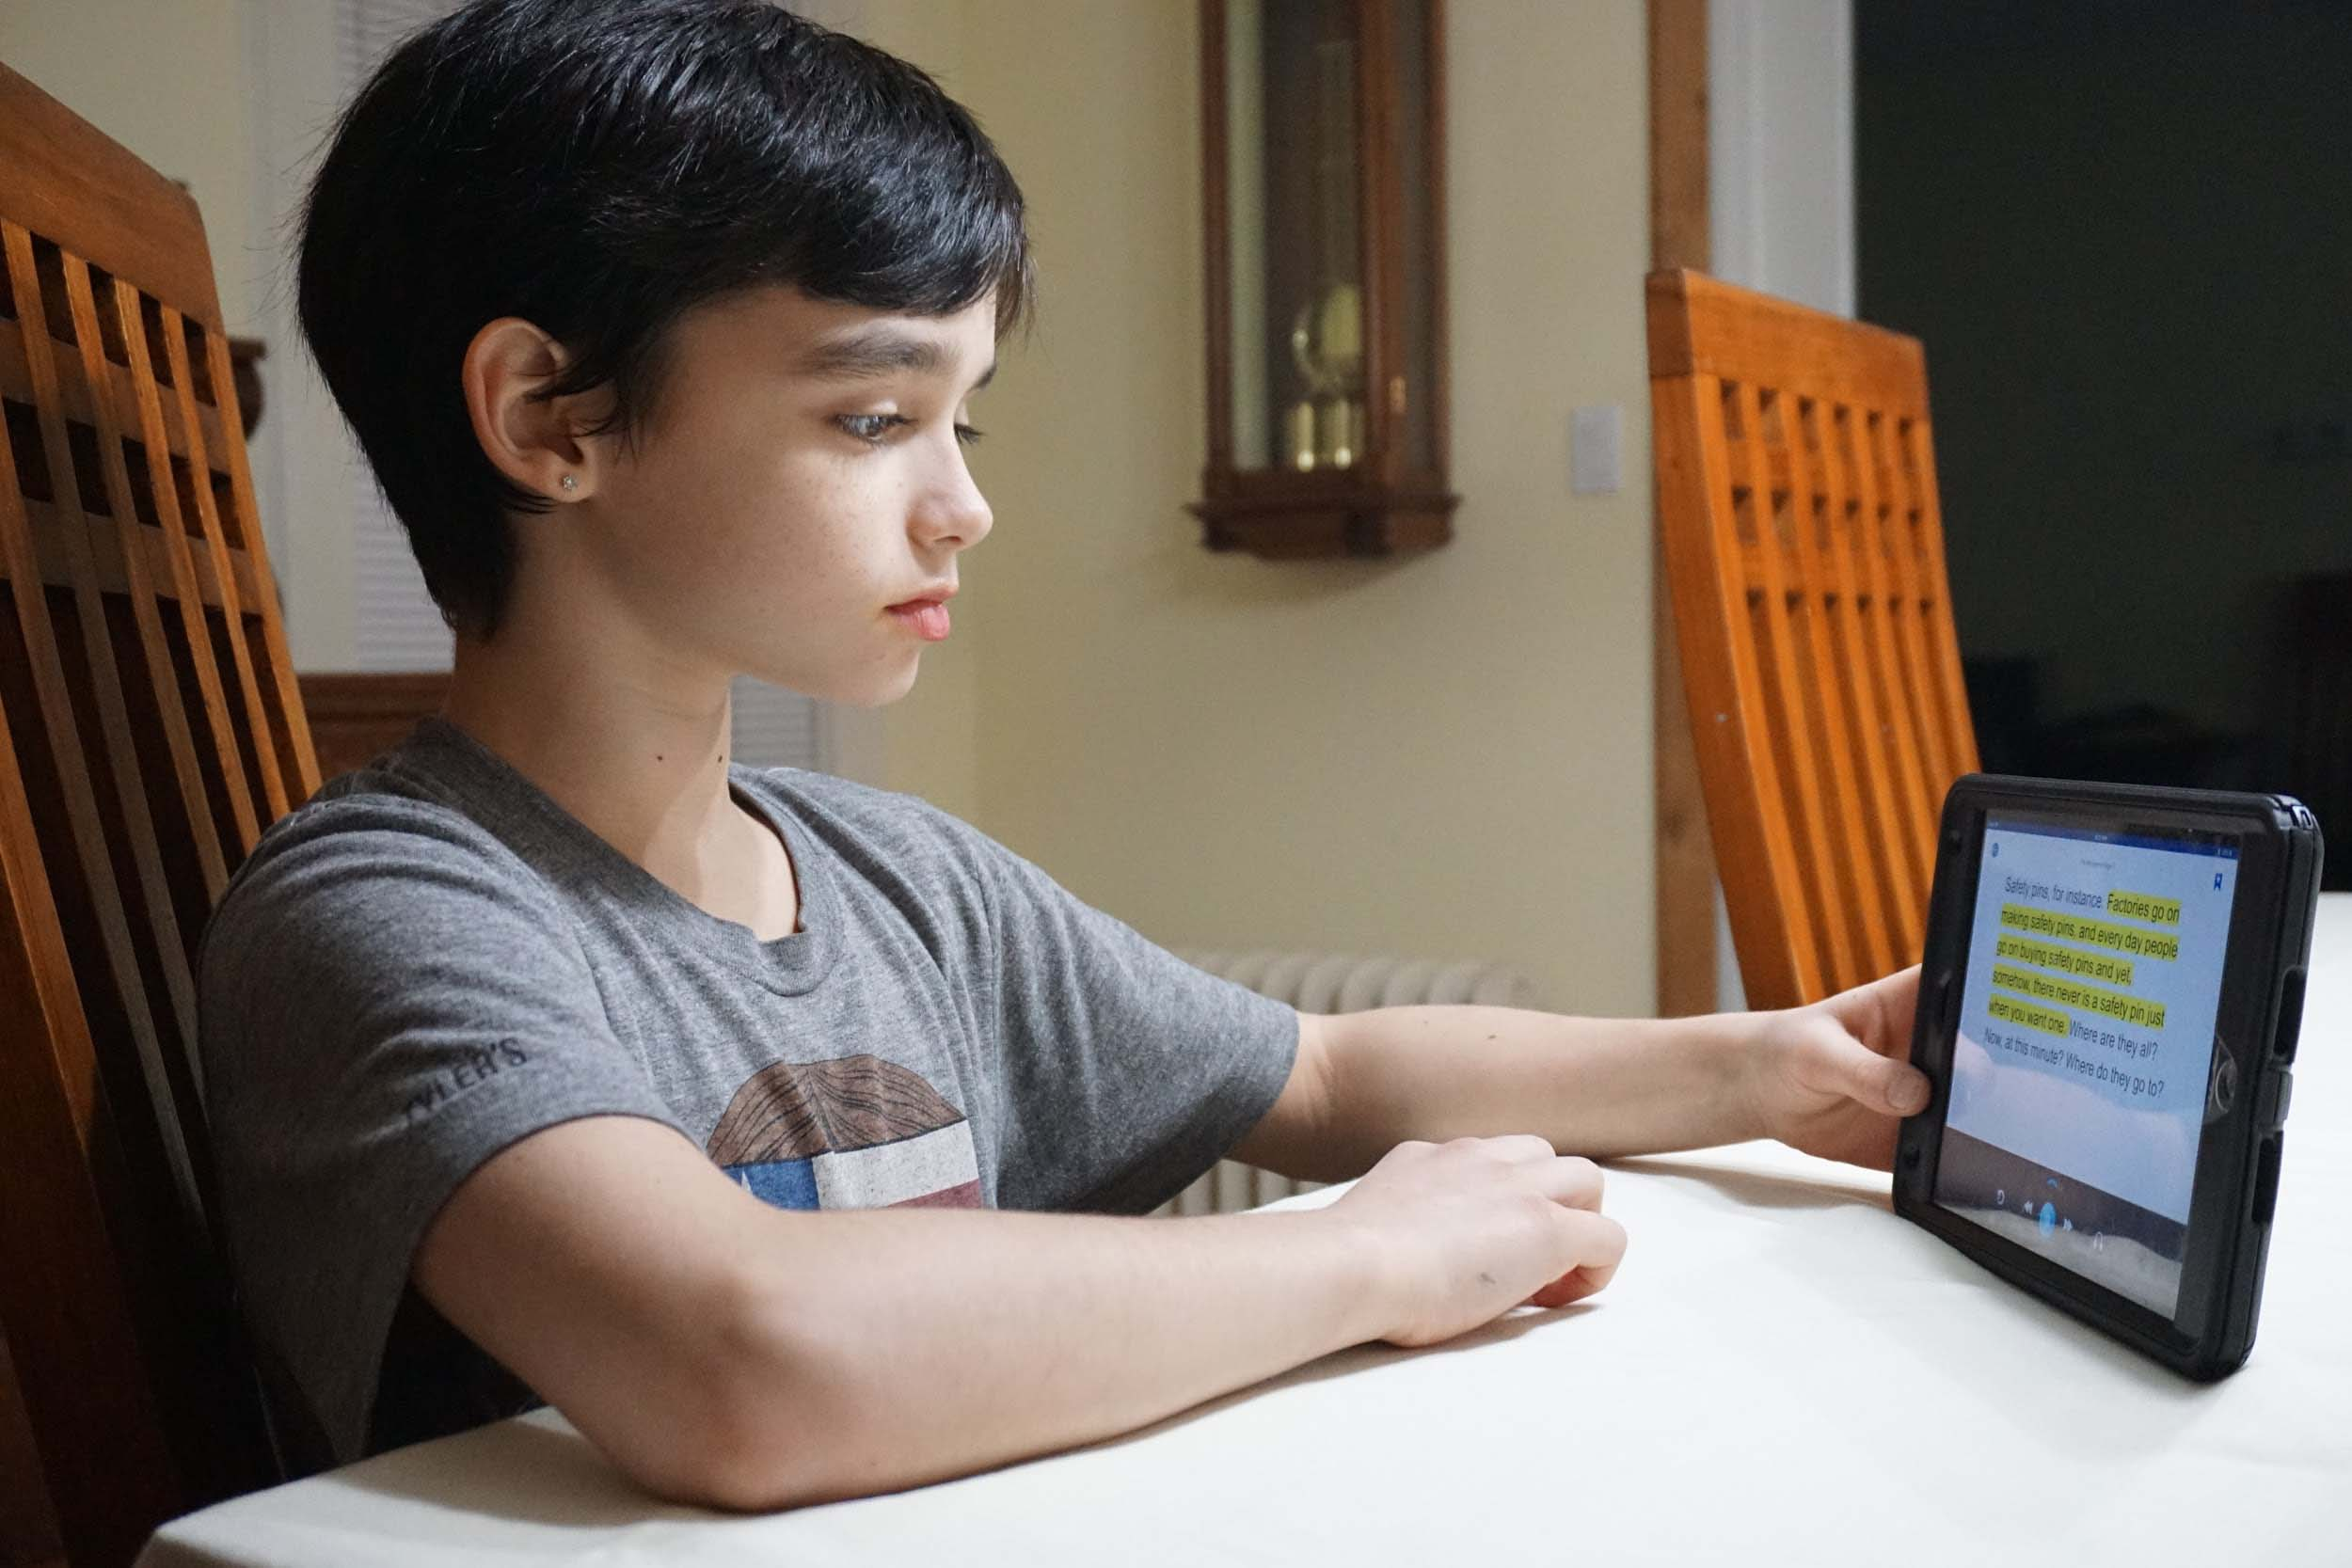 Boy Reads Using Device